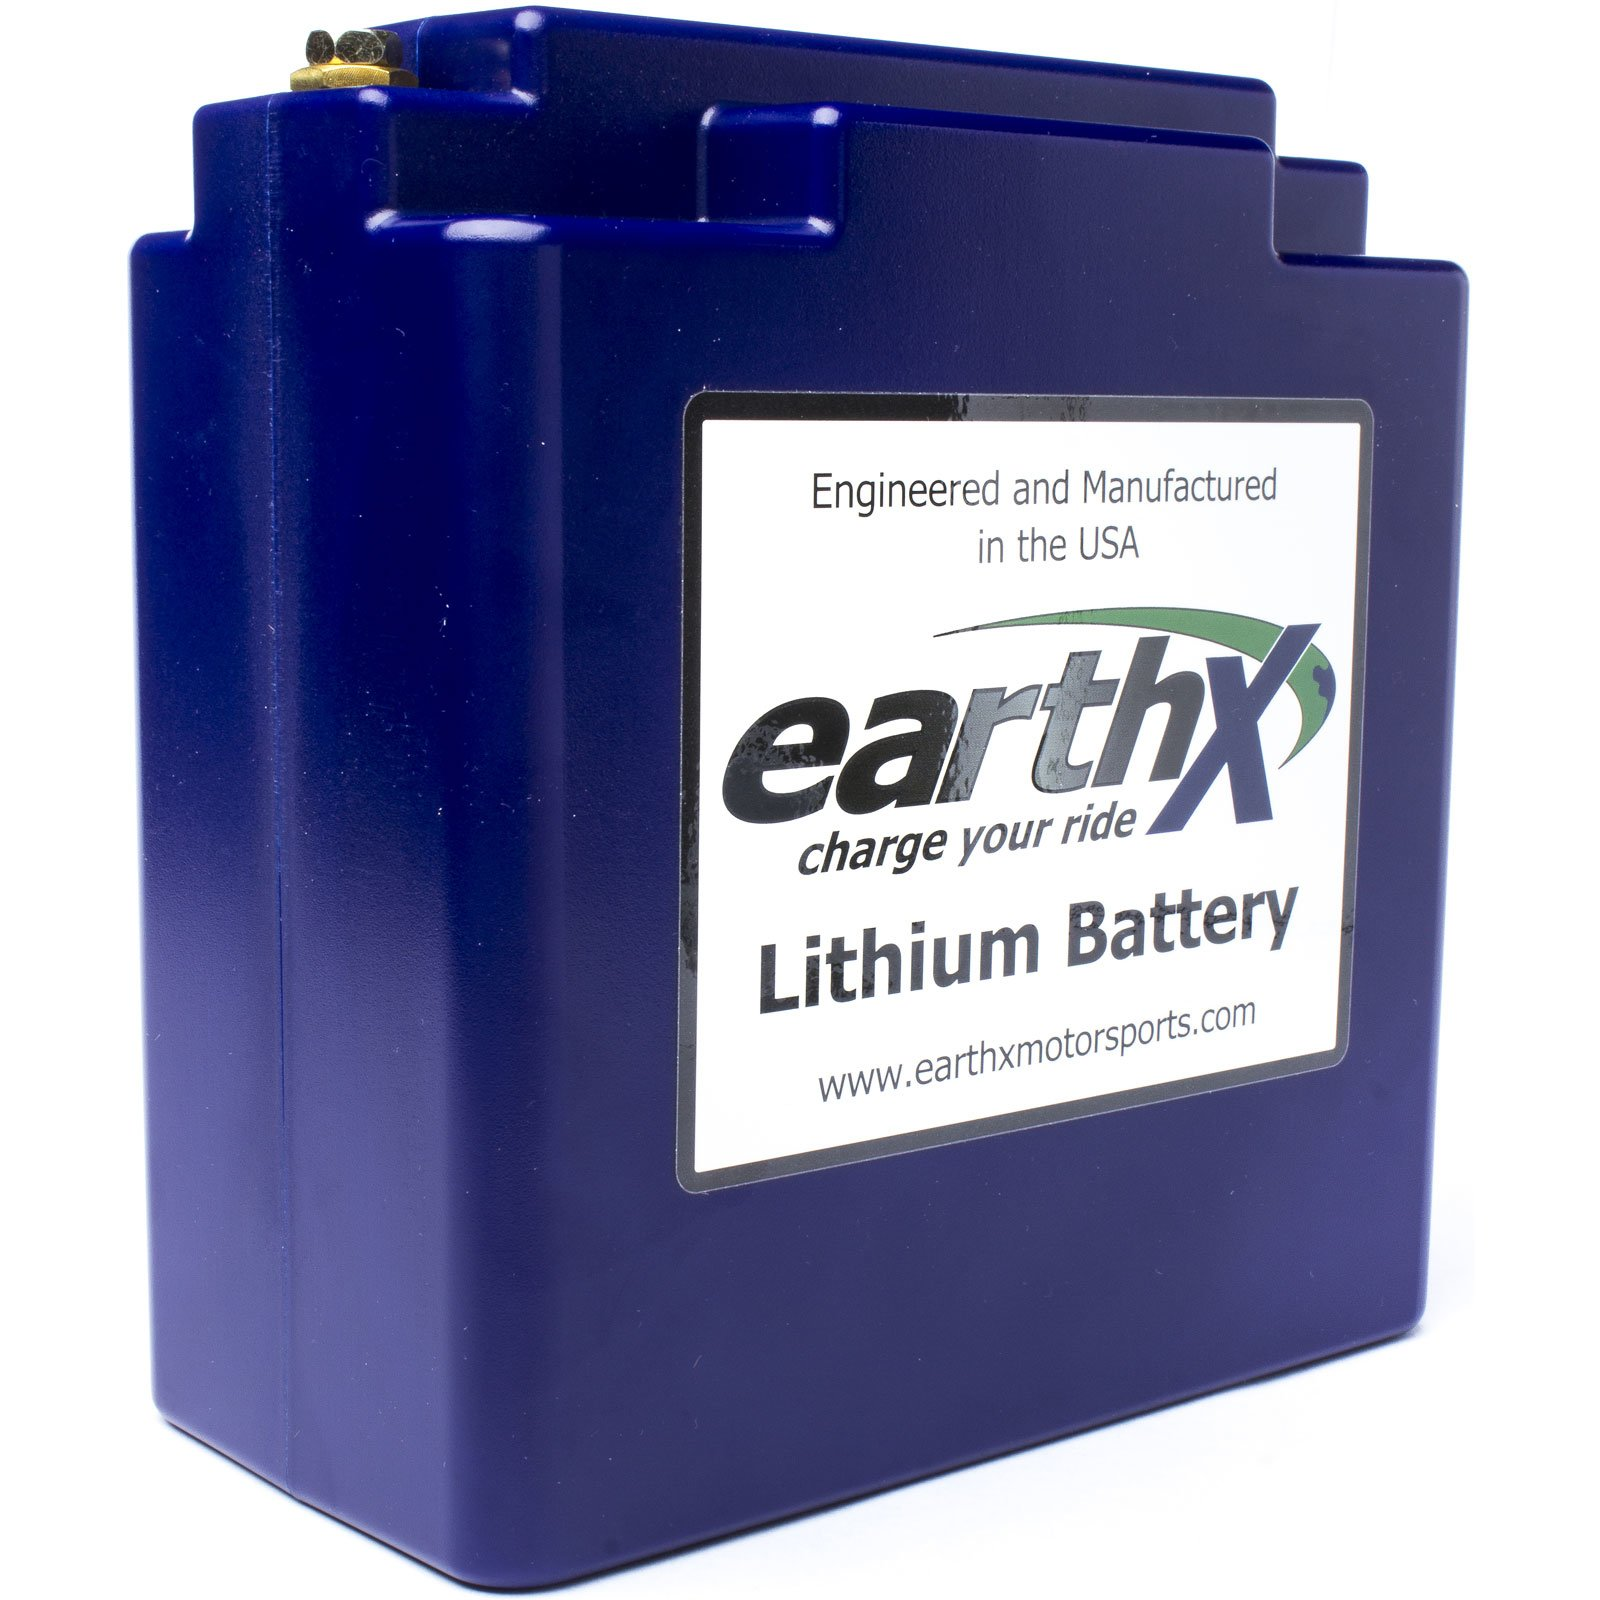 Earthx Etx1200 Lithium Battery For Experimental Aircraft